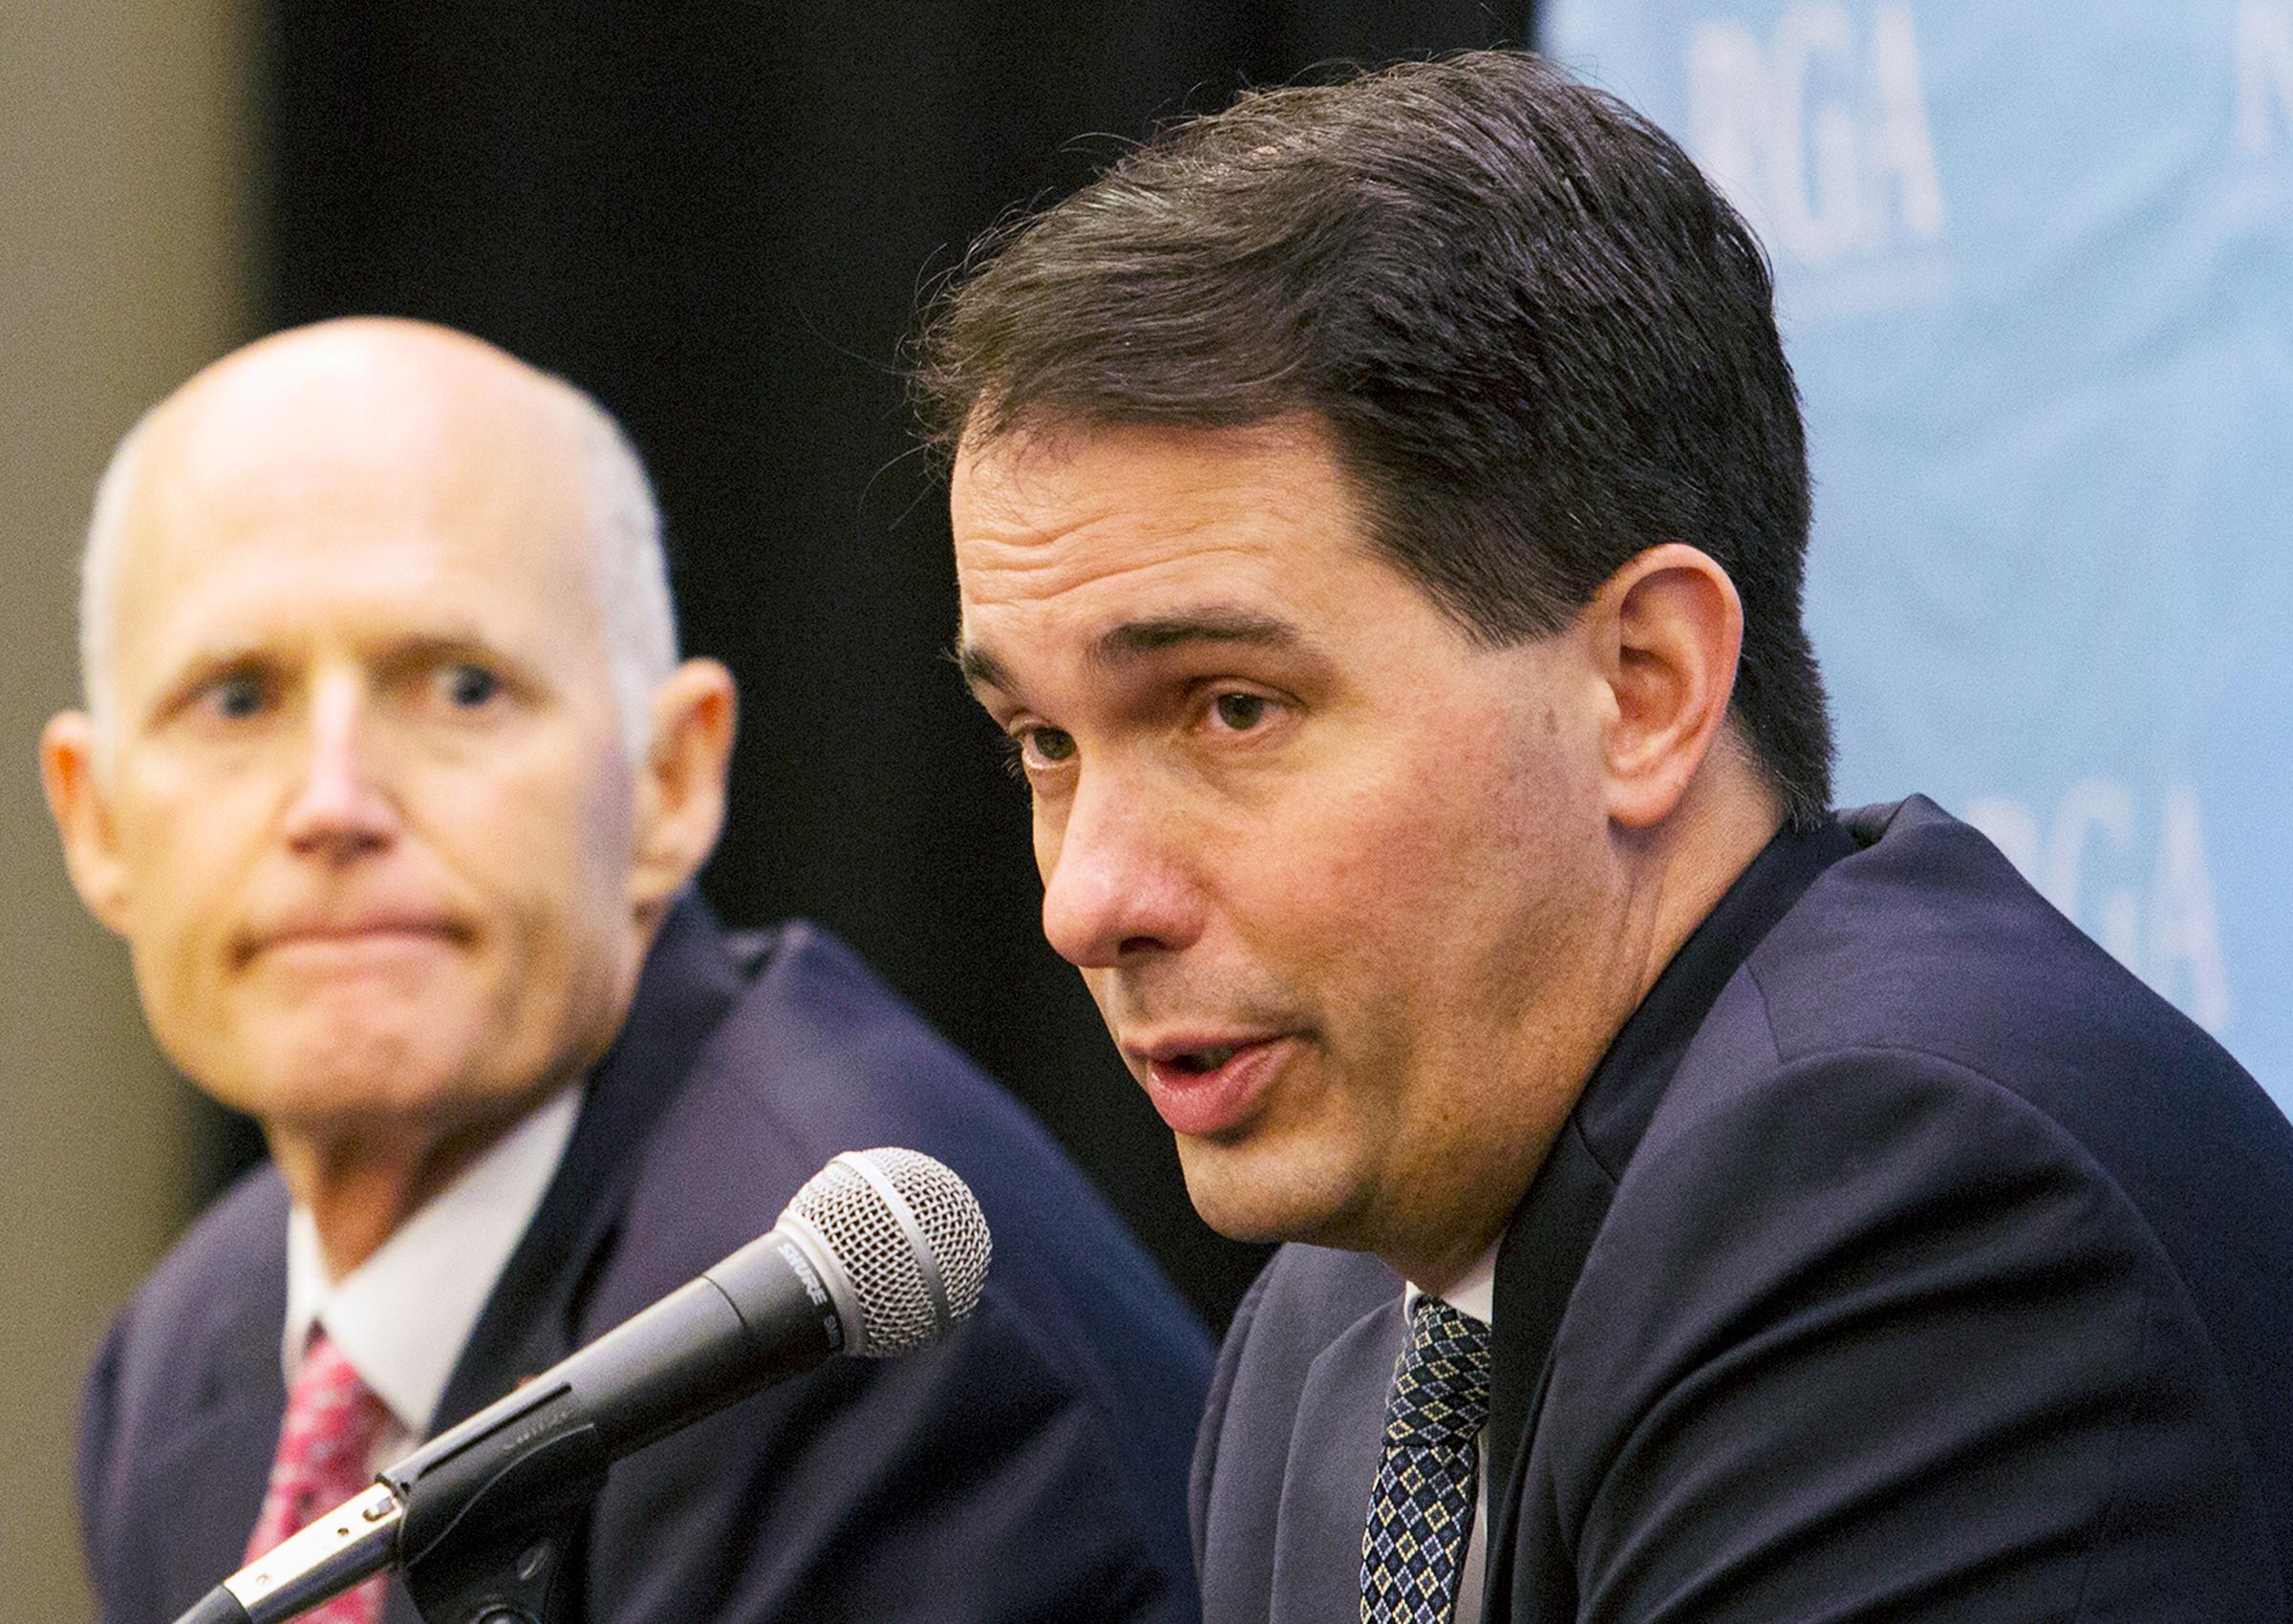 FILE - In this Nov. 15, 2017, file photo, Wisconsin Gov. Scott Walker answers questions during the Republican Governors Association's Annual Conference in Austin, Texas. The Trump administration's decision to allow states to make a work a requirement for Medicaid is being cheered by Republican leaders who say the limit is needed to curb a program that was originally intended to get people back on their feet. Walker, an ally of Trump's, sought federal approval for a work requirement last year and said it helps prepare recipients to leave public assistance. (Ana Ramirez/Austin American-Statesman via AP, File)